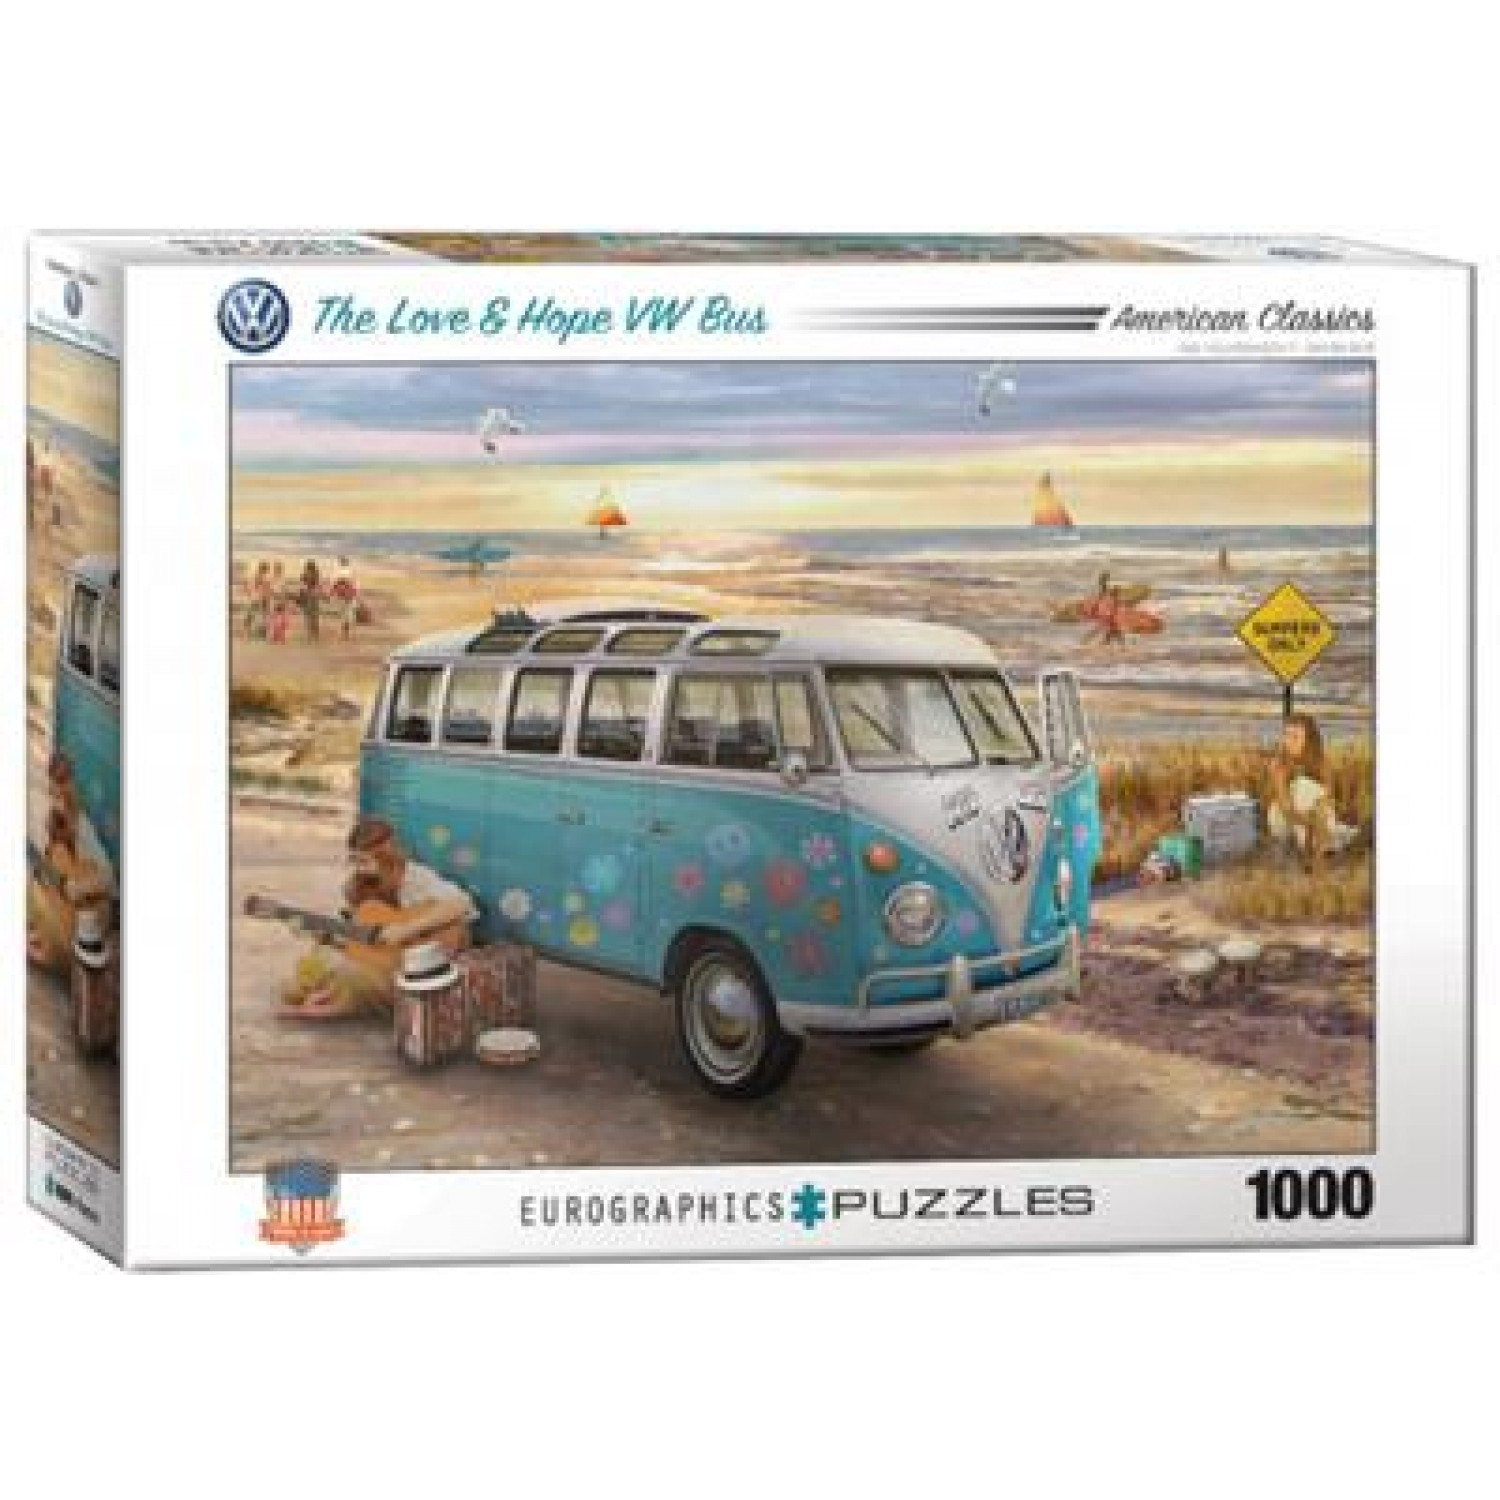 EUROGRAPHICS ΠΆΖΛ 1000ΤΕΜ. 6000-5310 THE LOVE & HOPE VW BUS OFFICIAL VOLKSWAGEN LICENSED